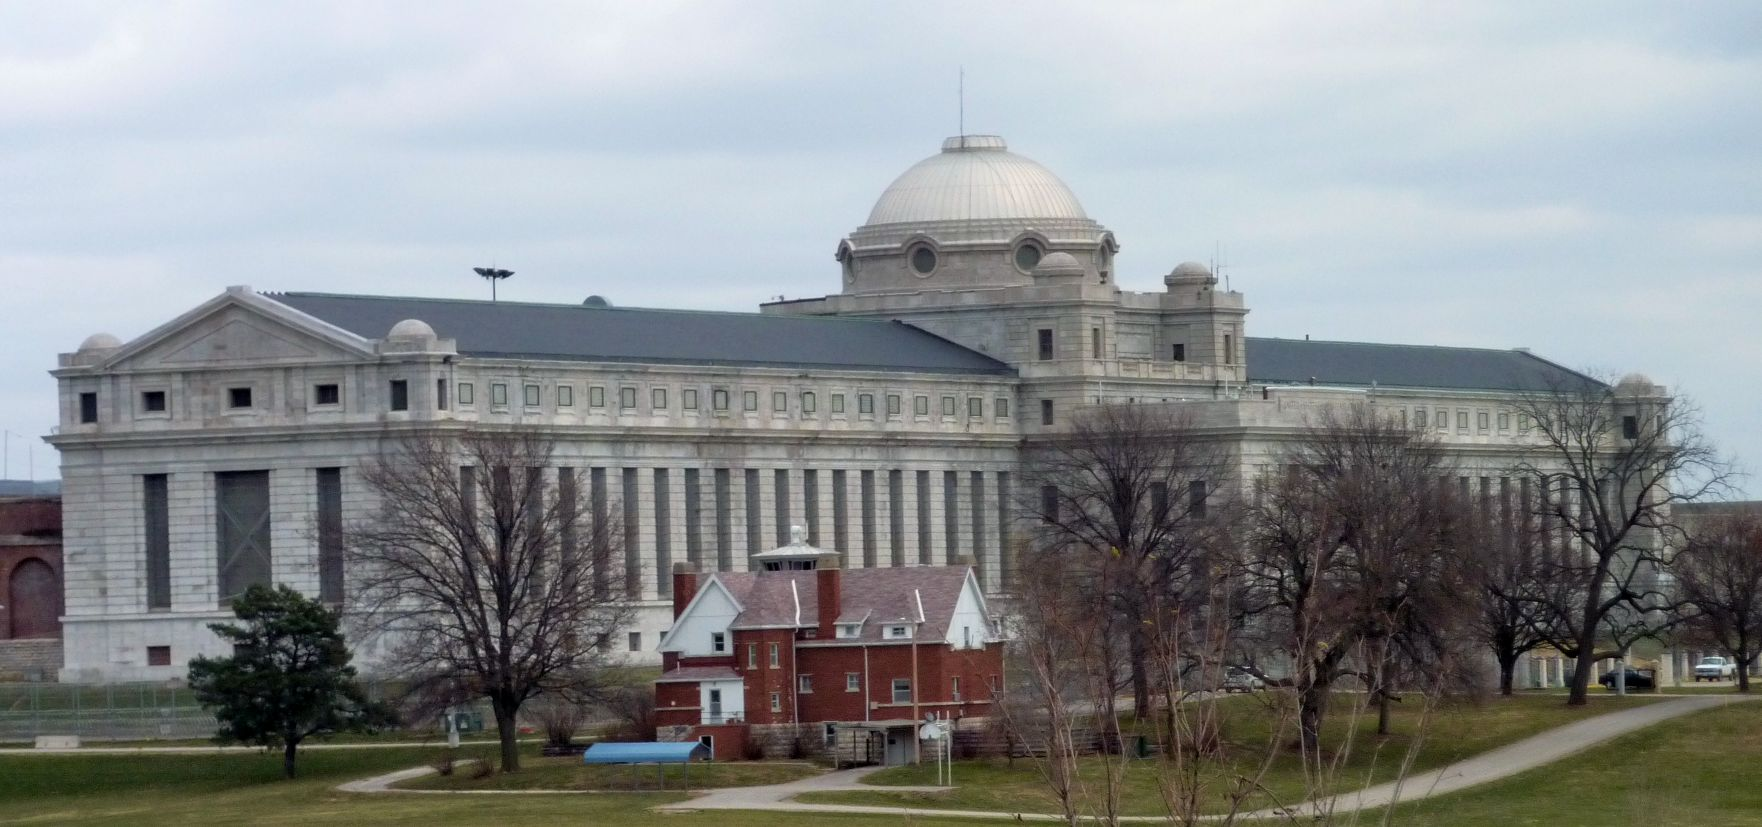 Ft. Leavenworth prison